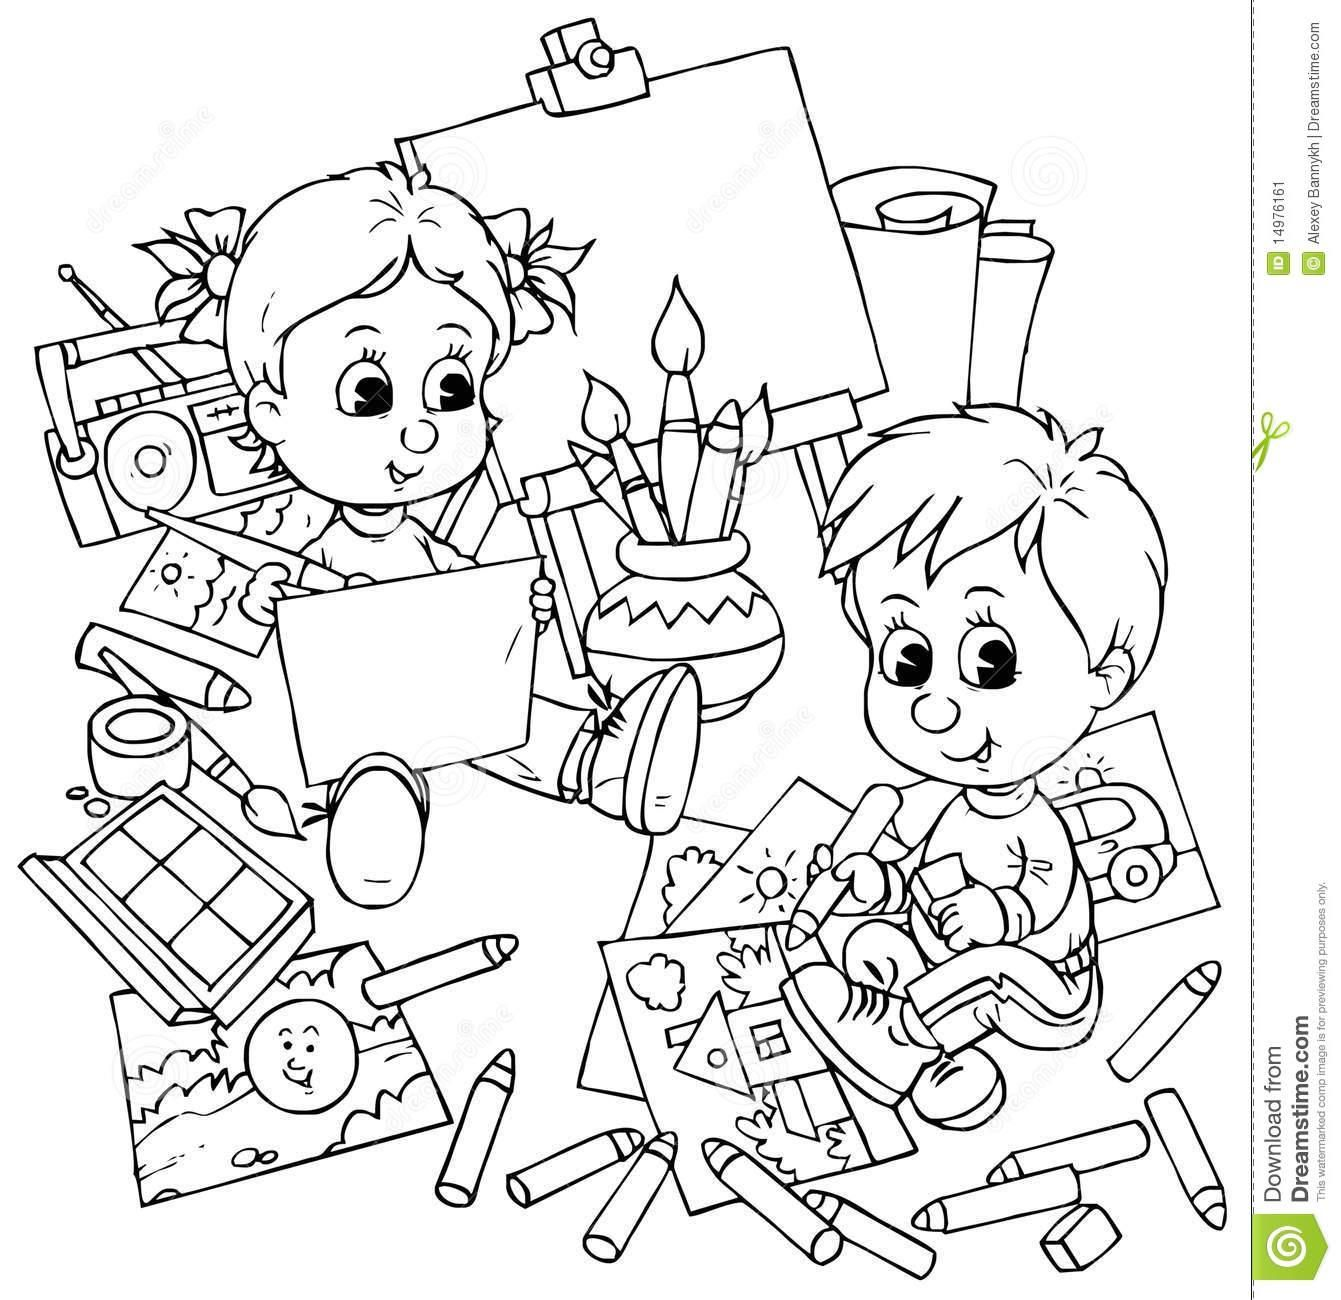 Drawing And Colouring Pictures For Kids